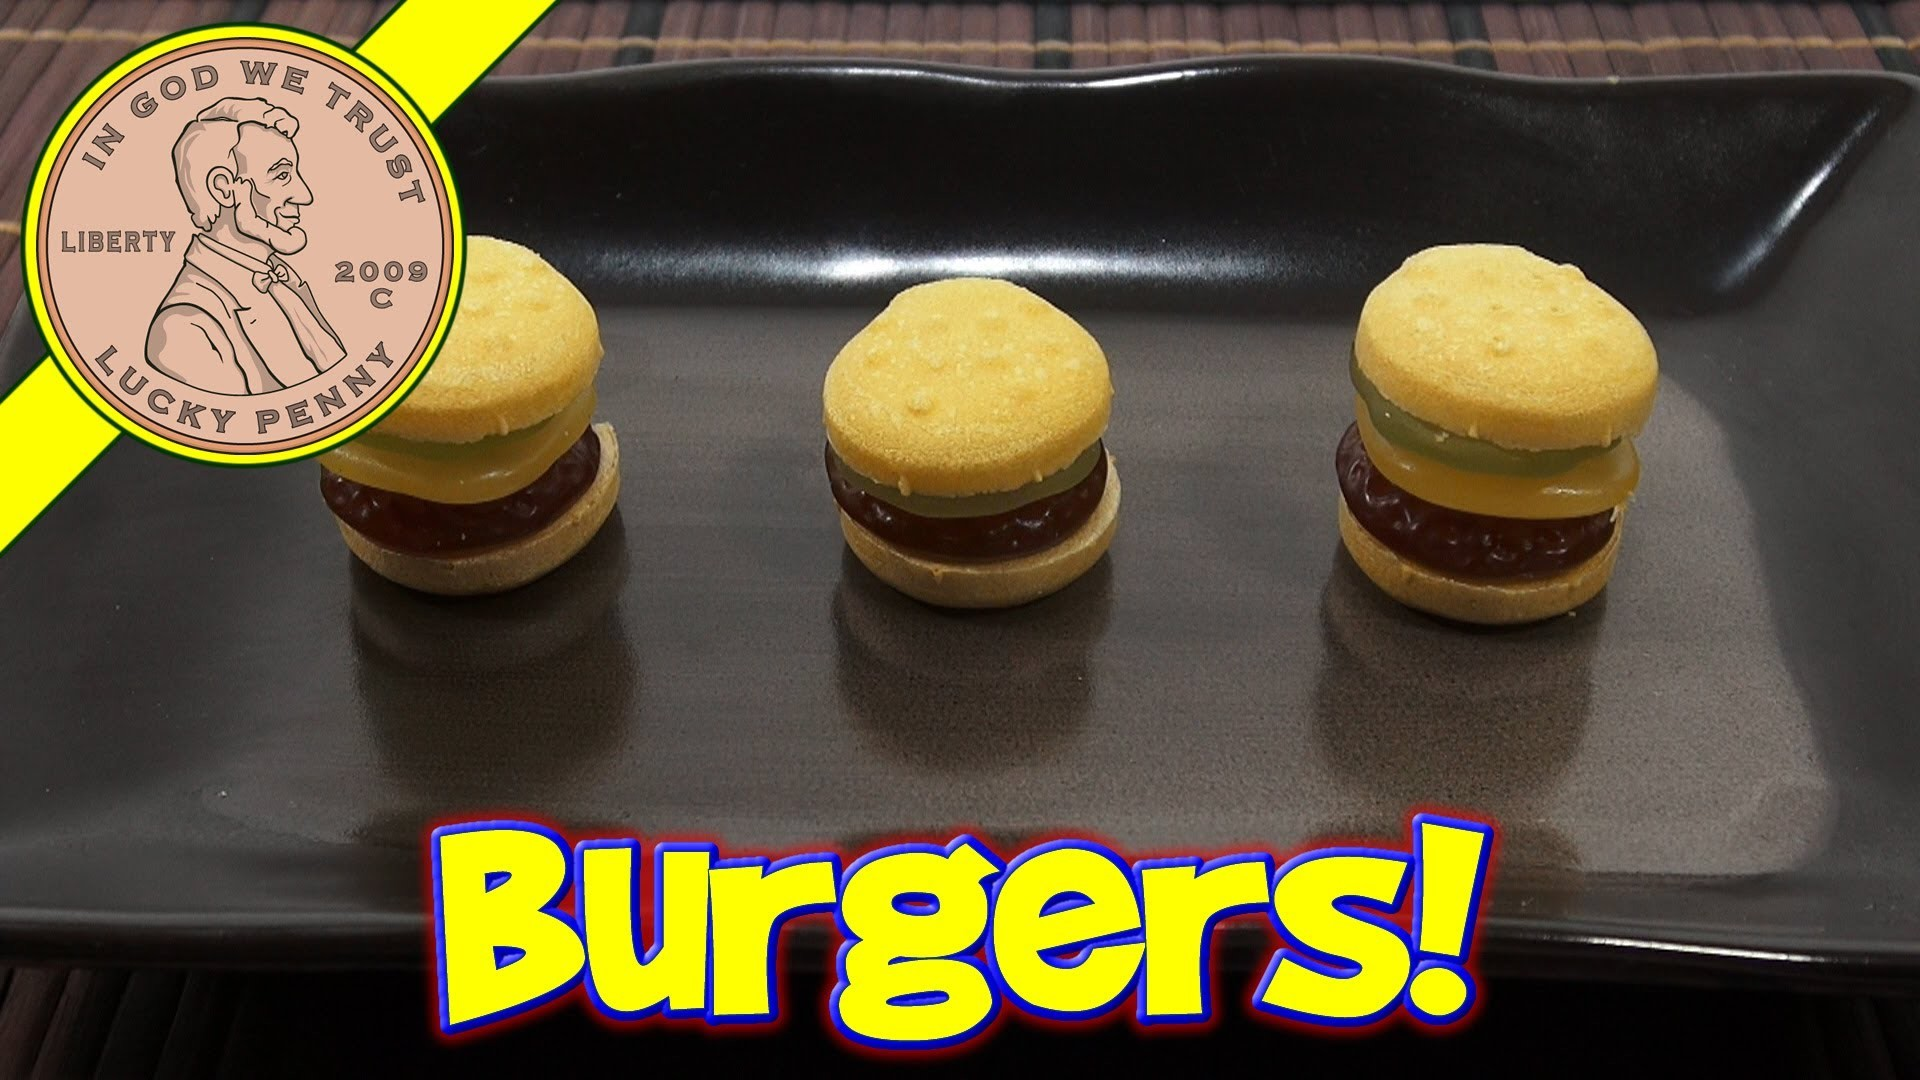 Cheeseburger & Hamburger Gummy DIY Japanese Maker Kit - Meiji Yataiman